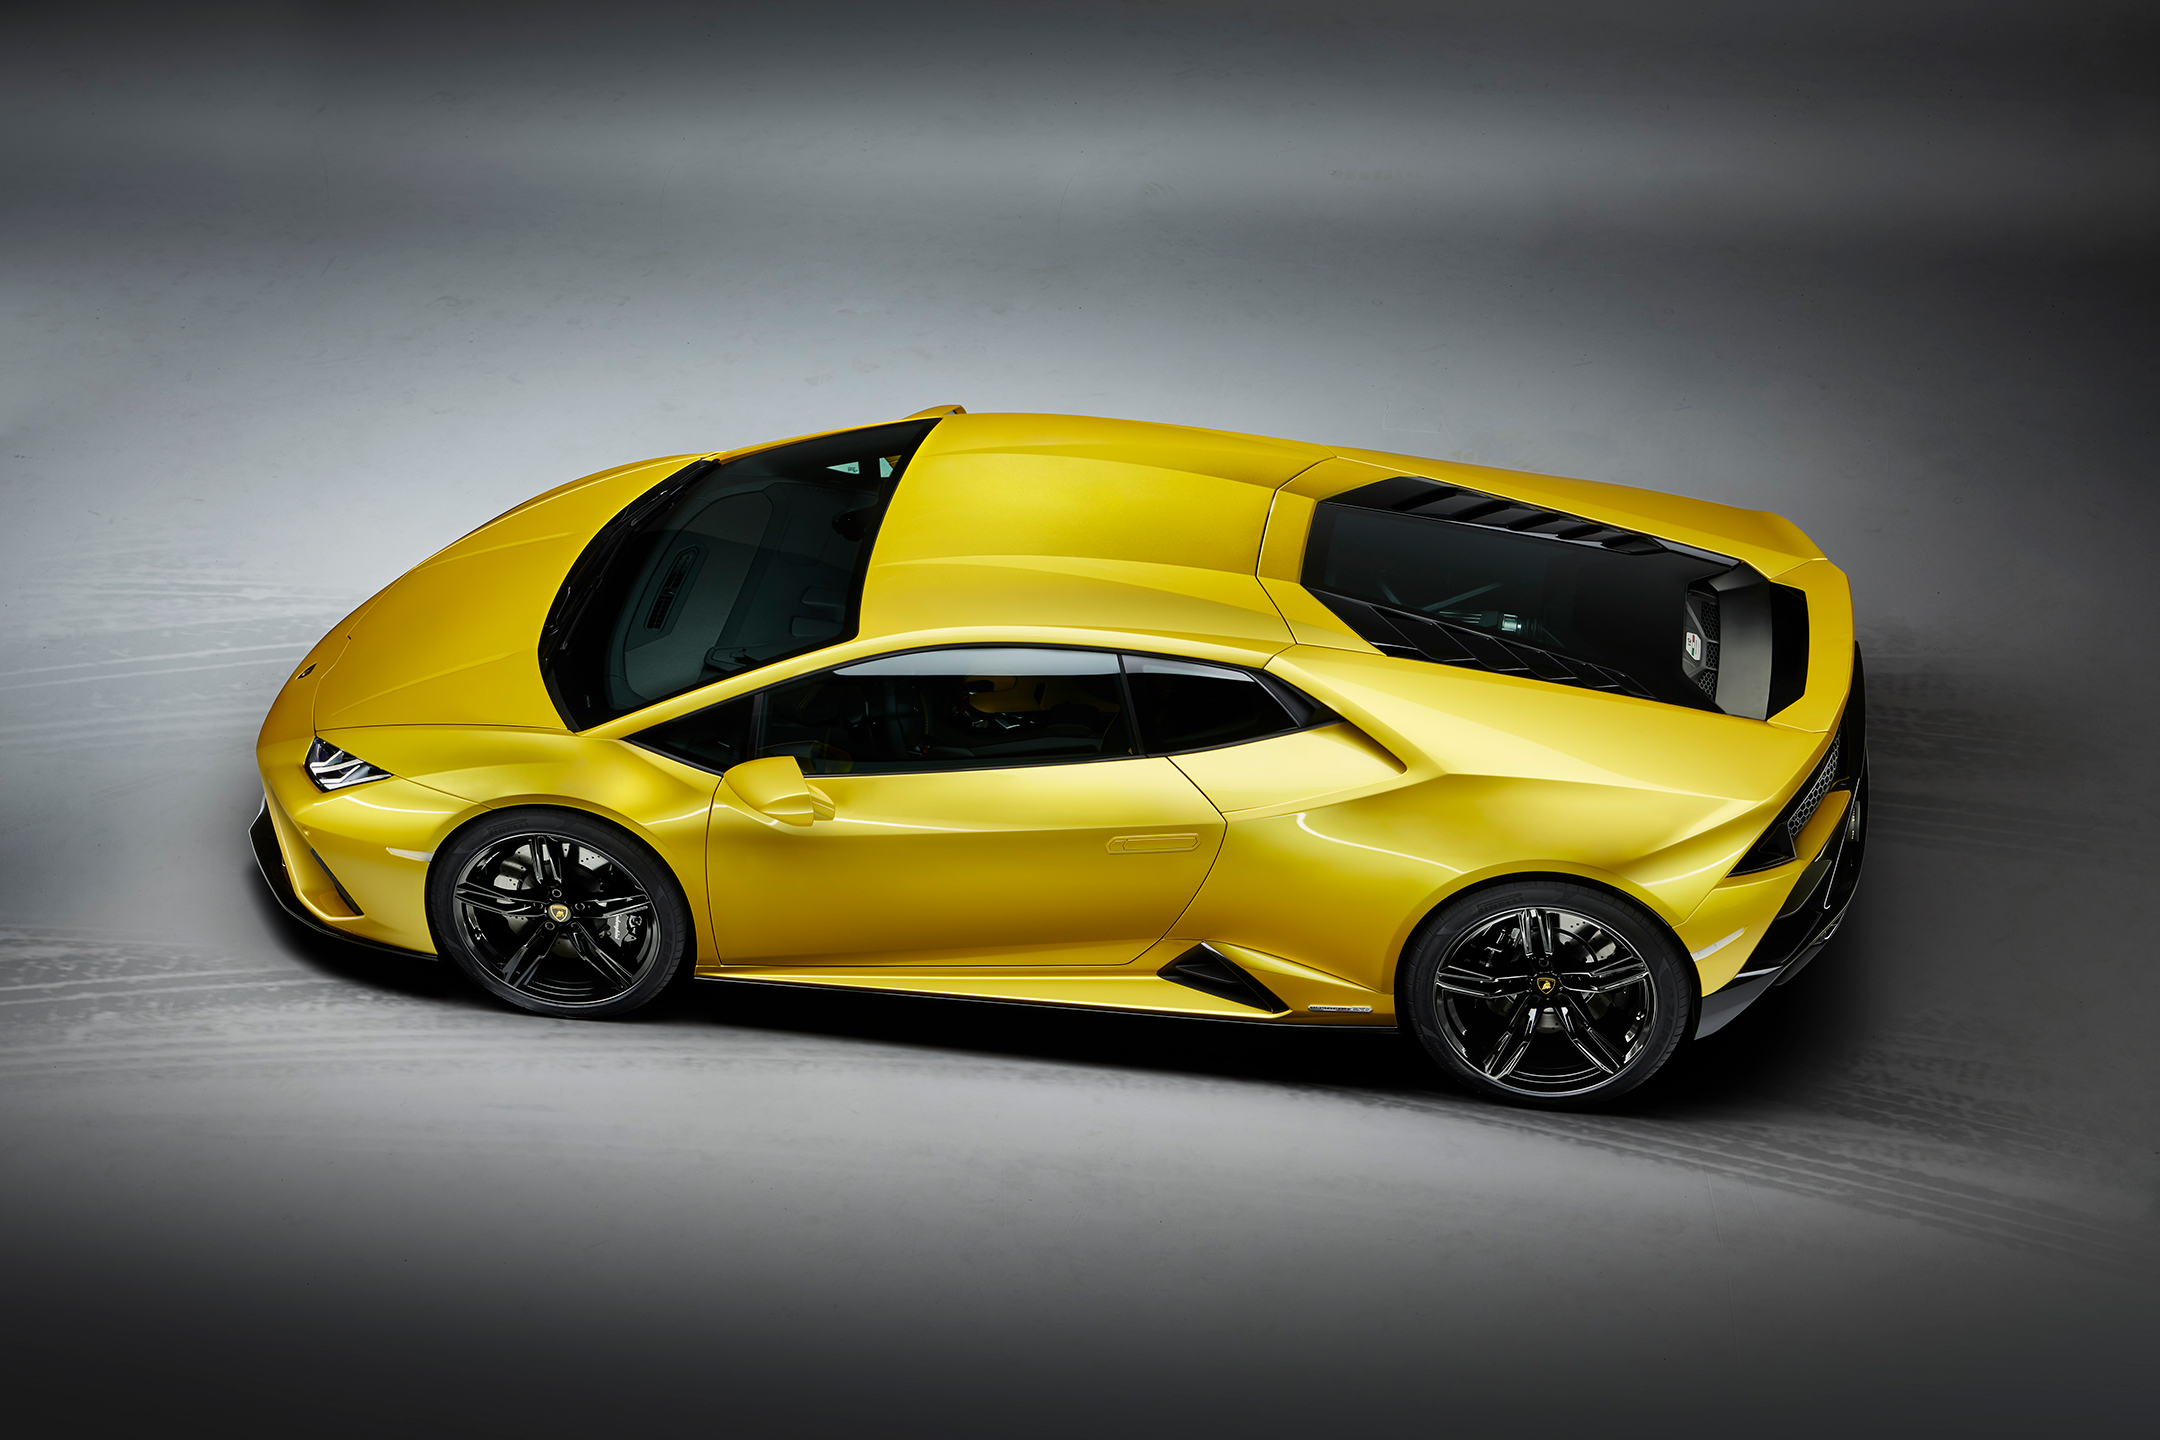 Lamborghini Huracán EVO RWD - 2020 - top view - side-face / profil